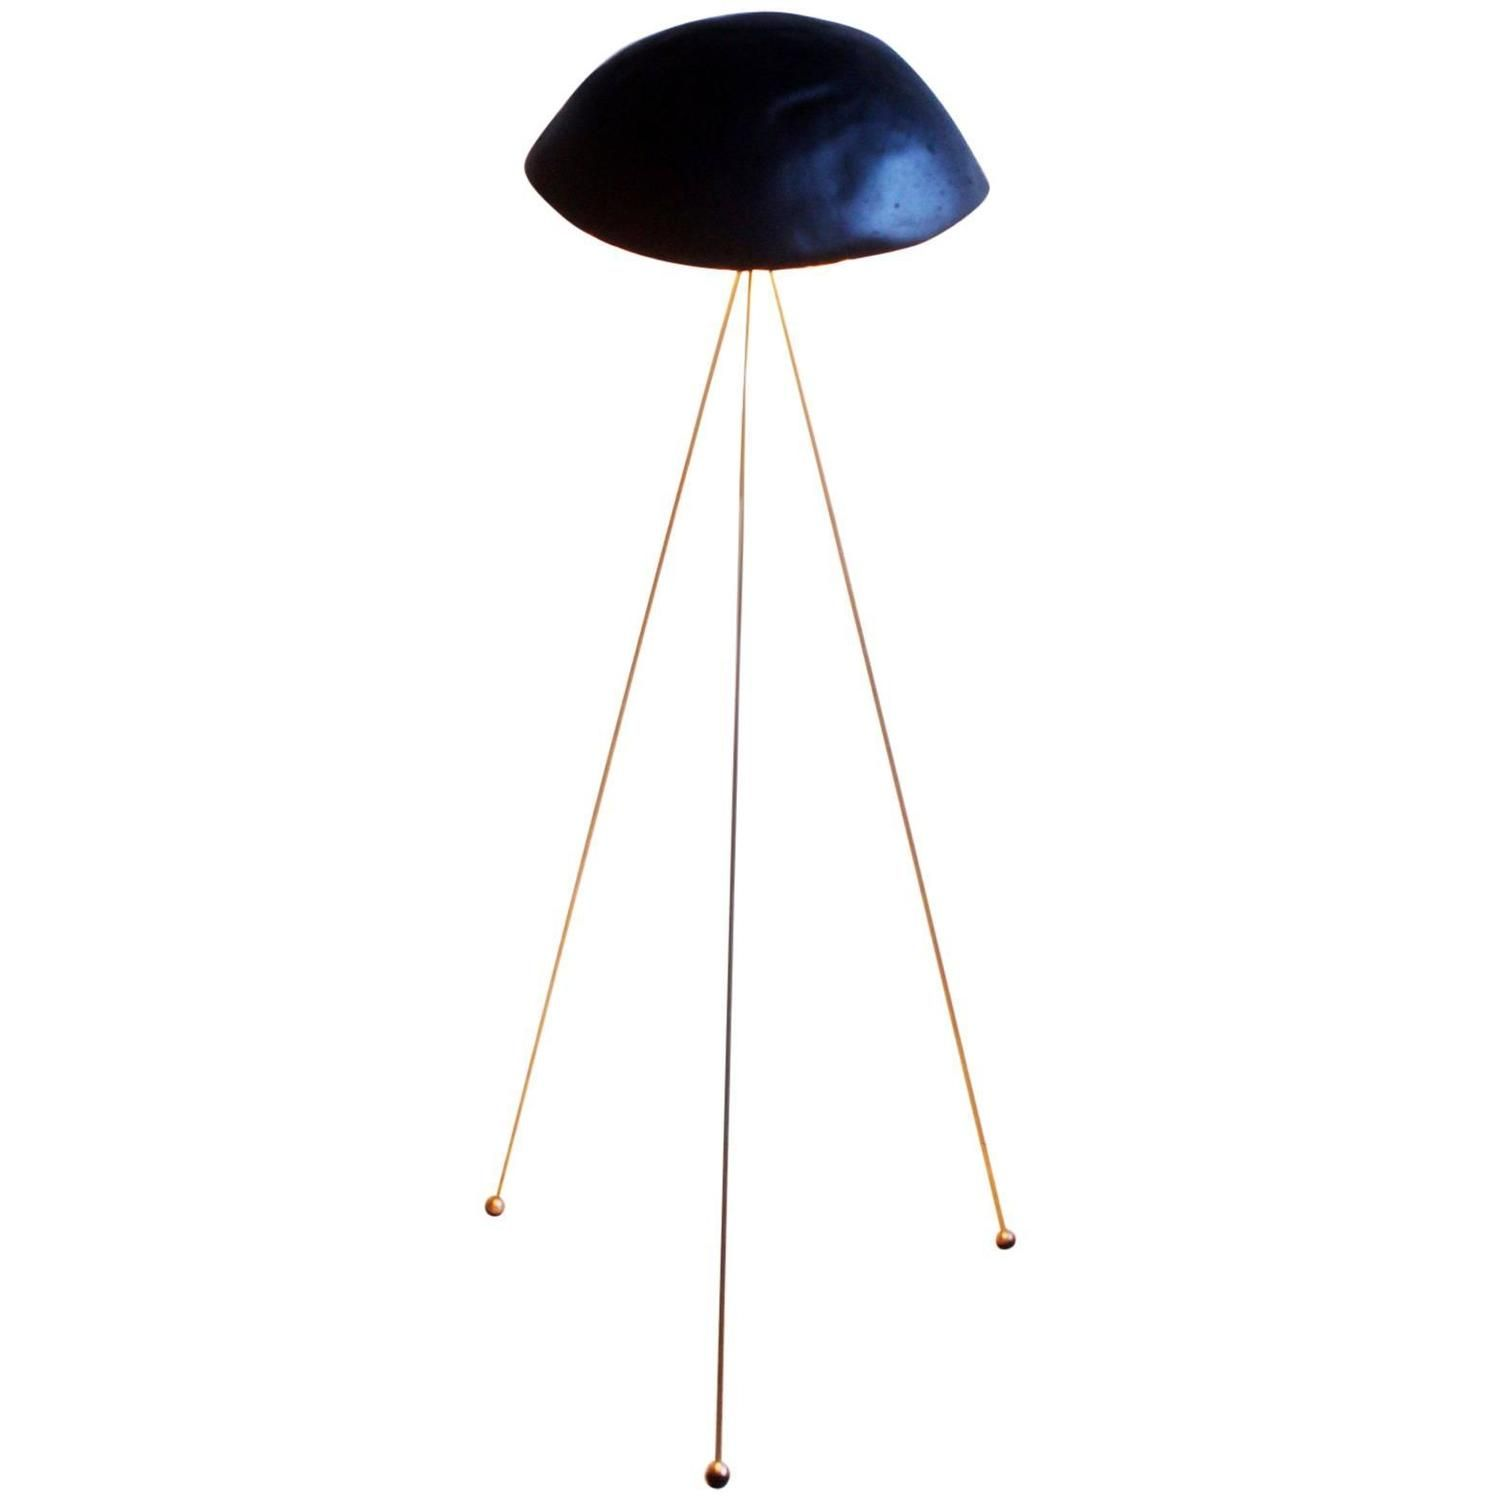 funny lamps for sale for sale on the funny buddy floor lamp has handcast irregularly domed gypsum noggin that sits three skinny long brass legs with rubberdipped concrete noggin and brass tripod legs